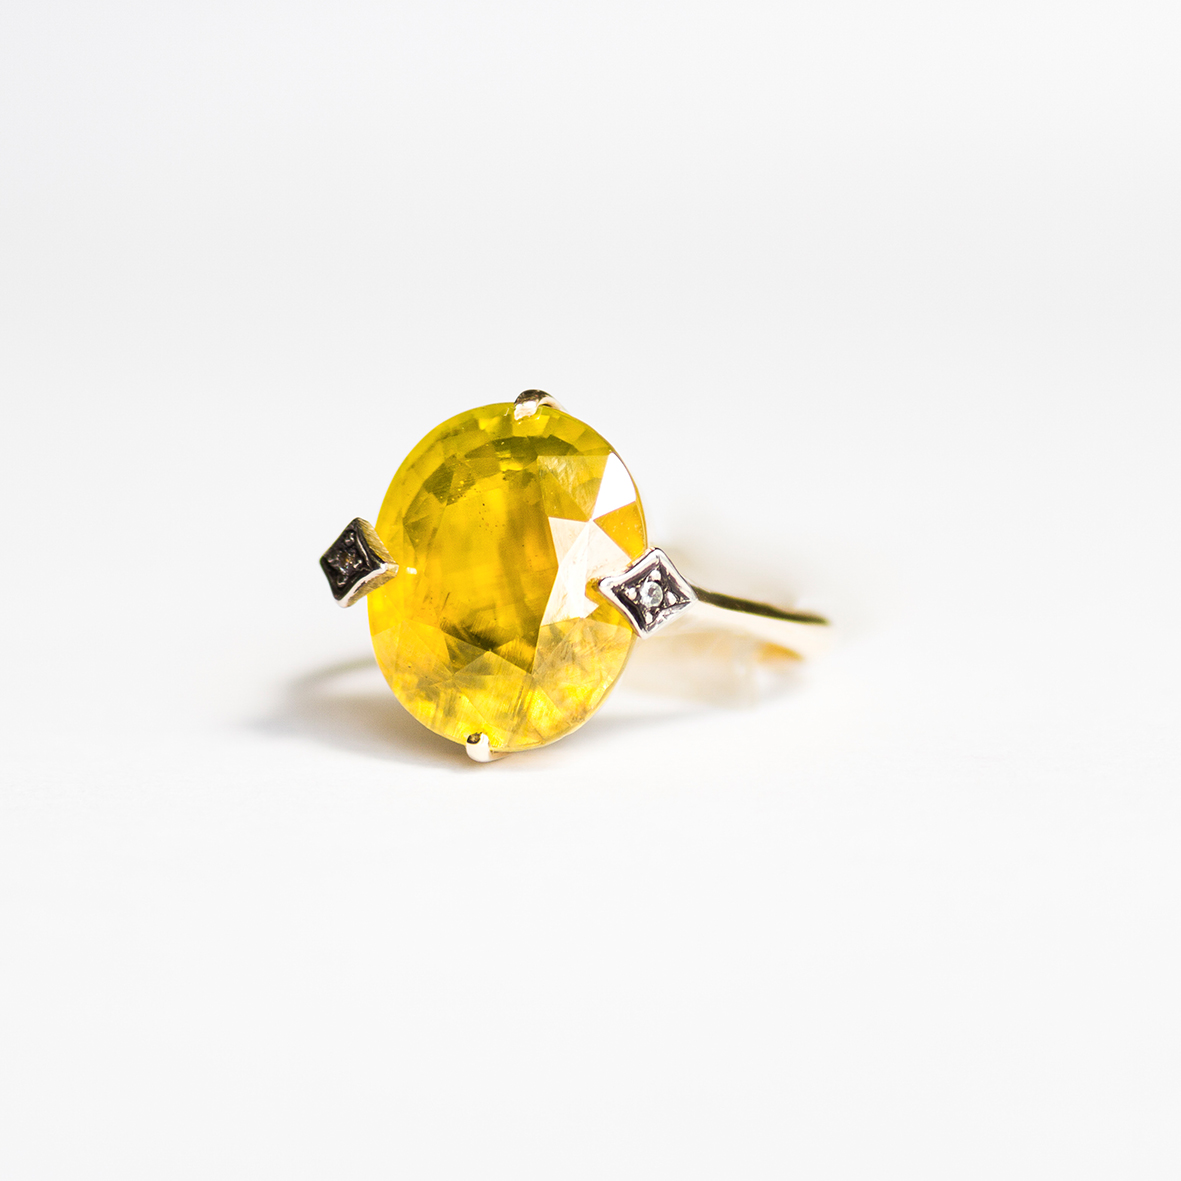 2. OONA_gems of ceylon_ficha2_yellow tourmaline ring